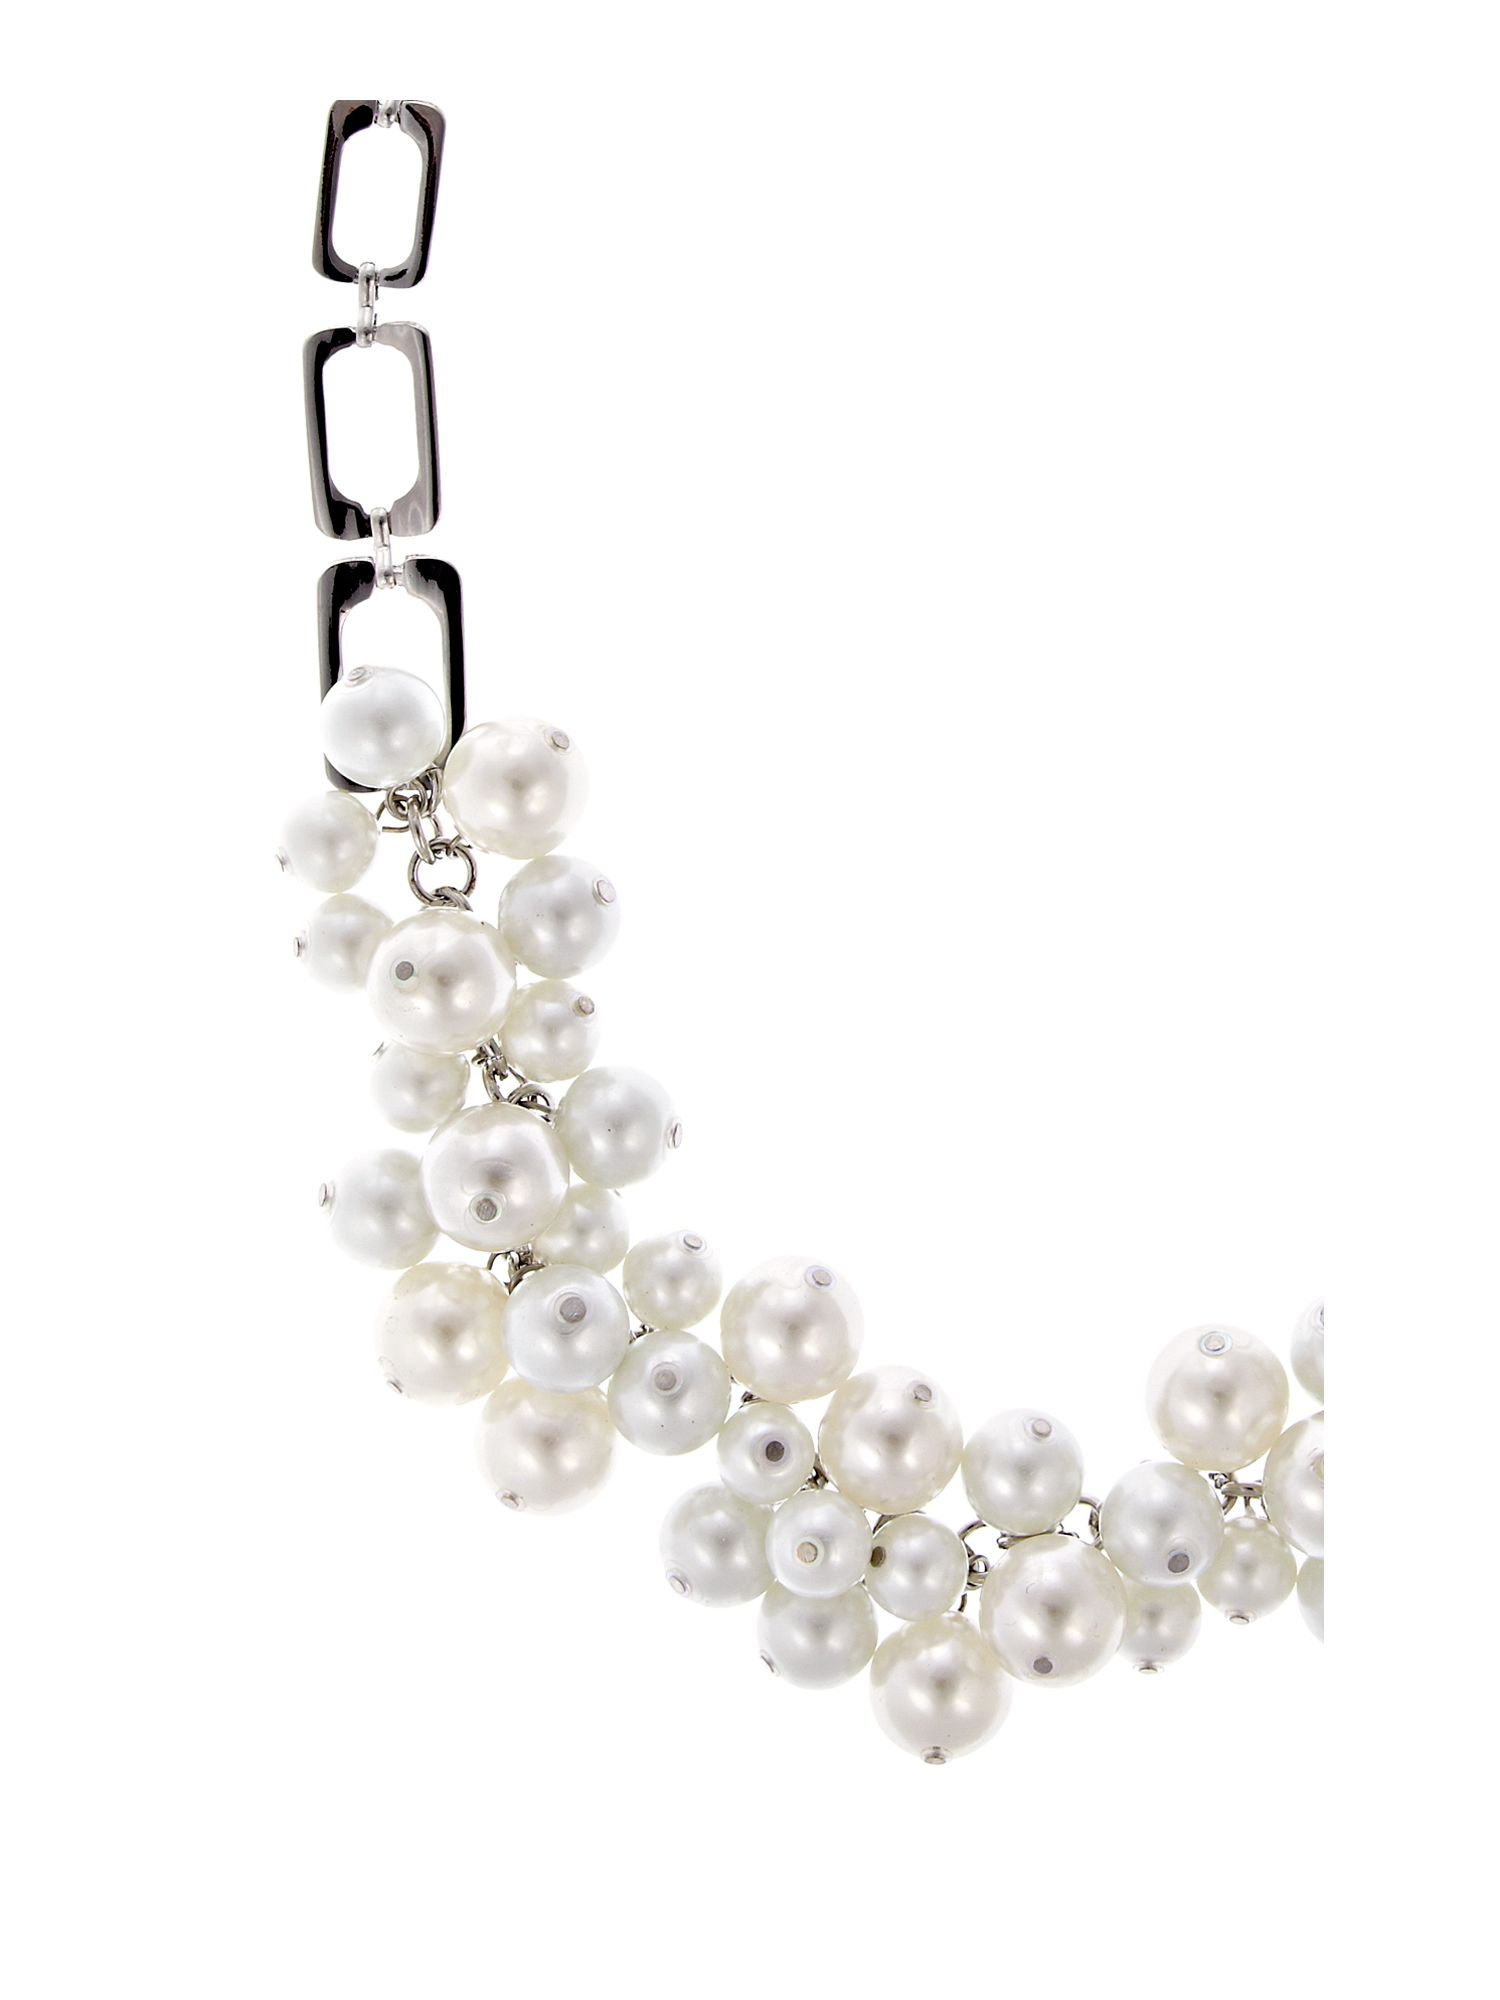 Miss France Pearl Cluster Necklace